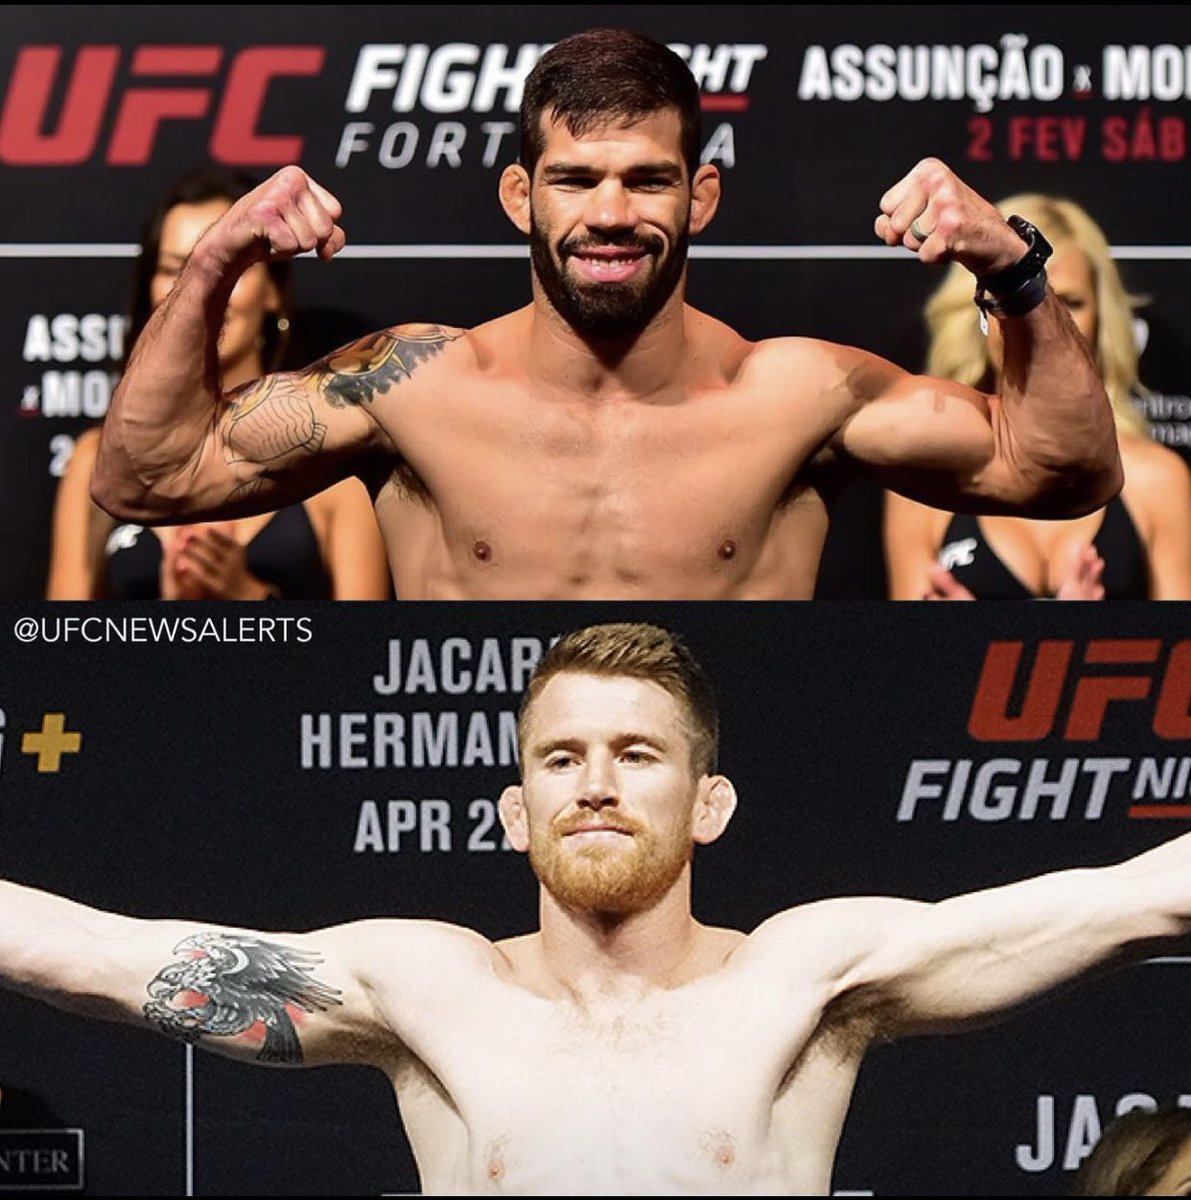 #8 ranked @cors_life takes on #2 ranked Raphael Assuncao at UFC 241 on August 17th in Anaheim, CA! #ElevationFightTeam #KeepClimbing